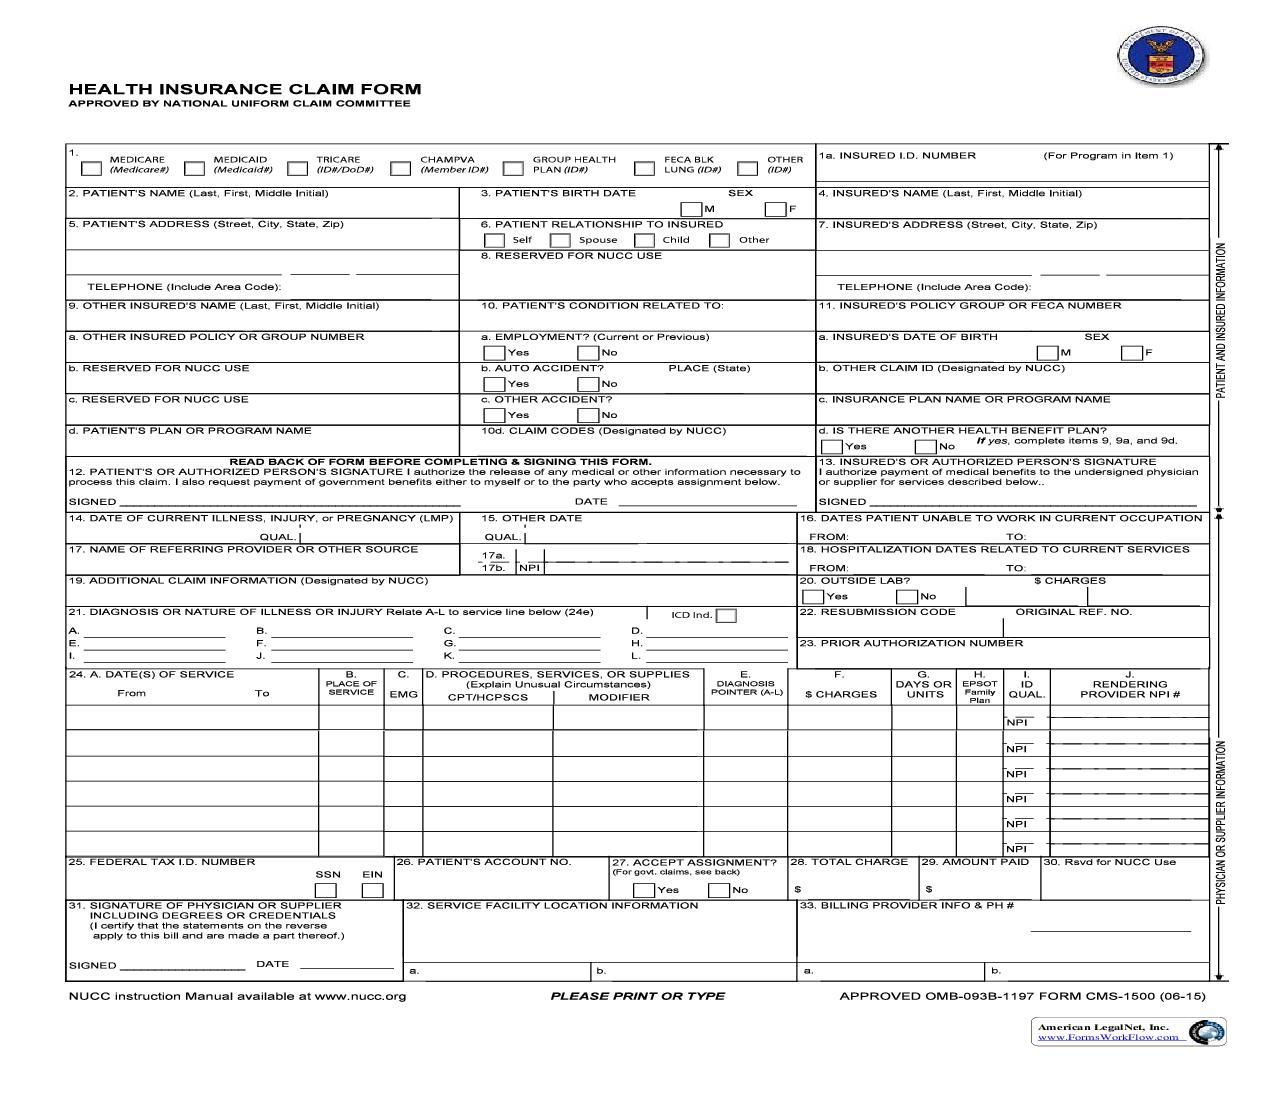 Owcp 1500 Health Insurance Claim Form